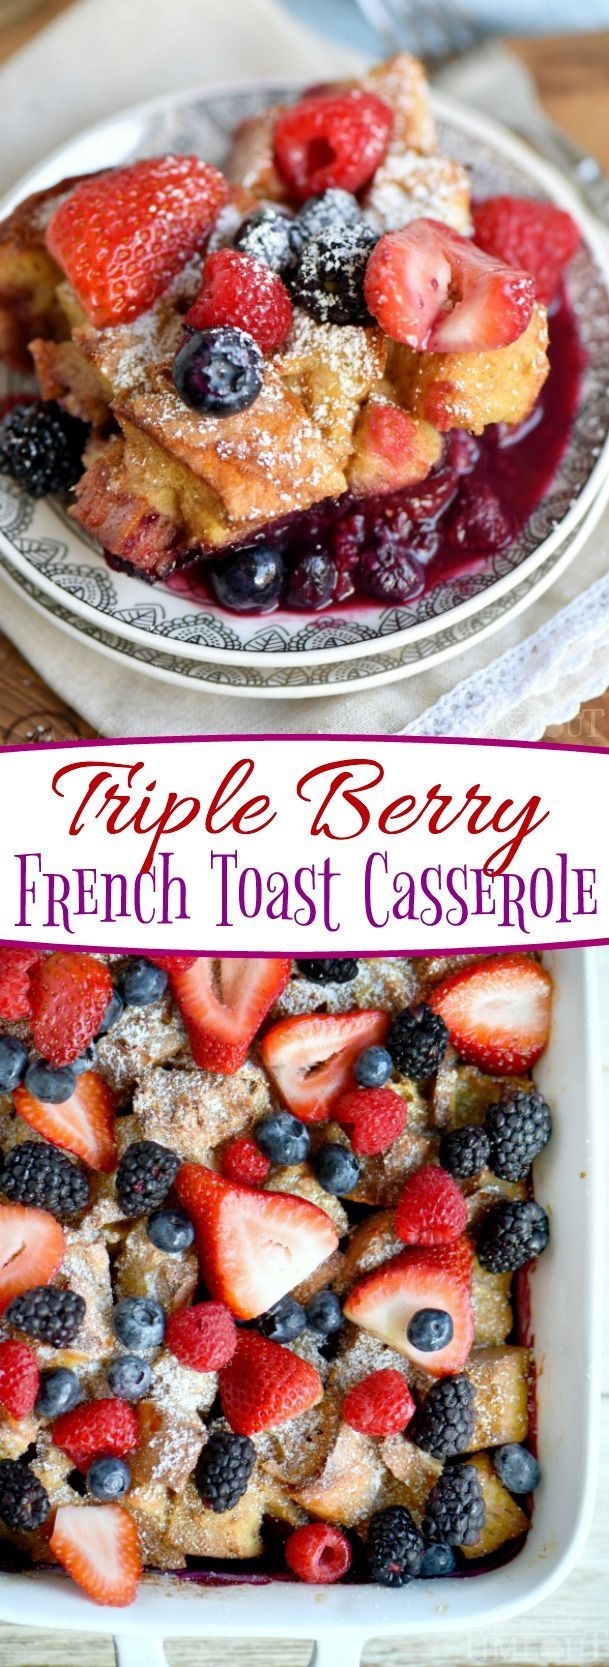 This Triple Berry French Toast Casserole is going to be a new family favorite! Incredibly easy and bursting with berry flavor! Great for breakfast or brunch, Christmas, Easter, Mother's Day and more! // Mom On Timeout #breakfast #brunch #recipe #berry #frenchtoast #casserole